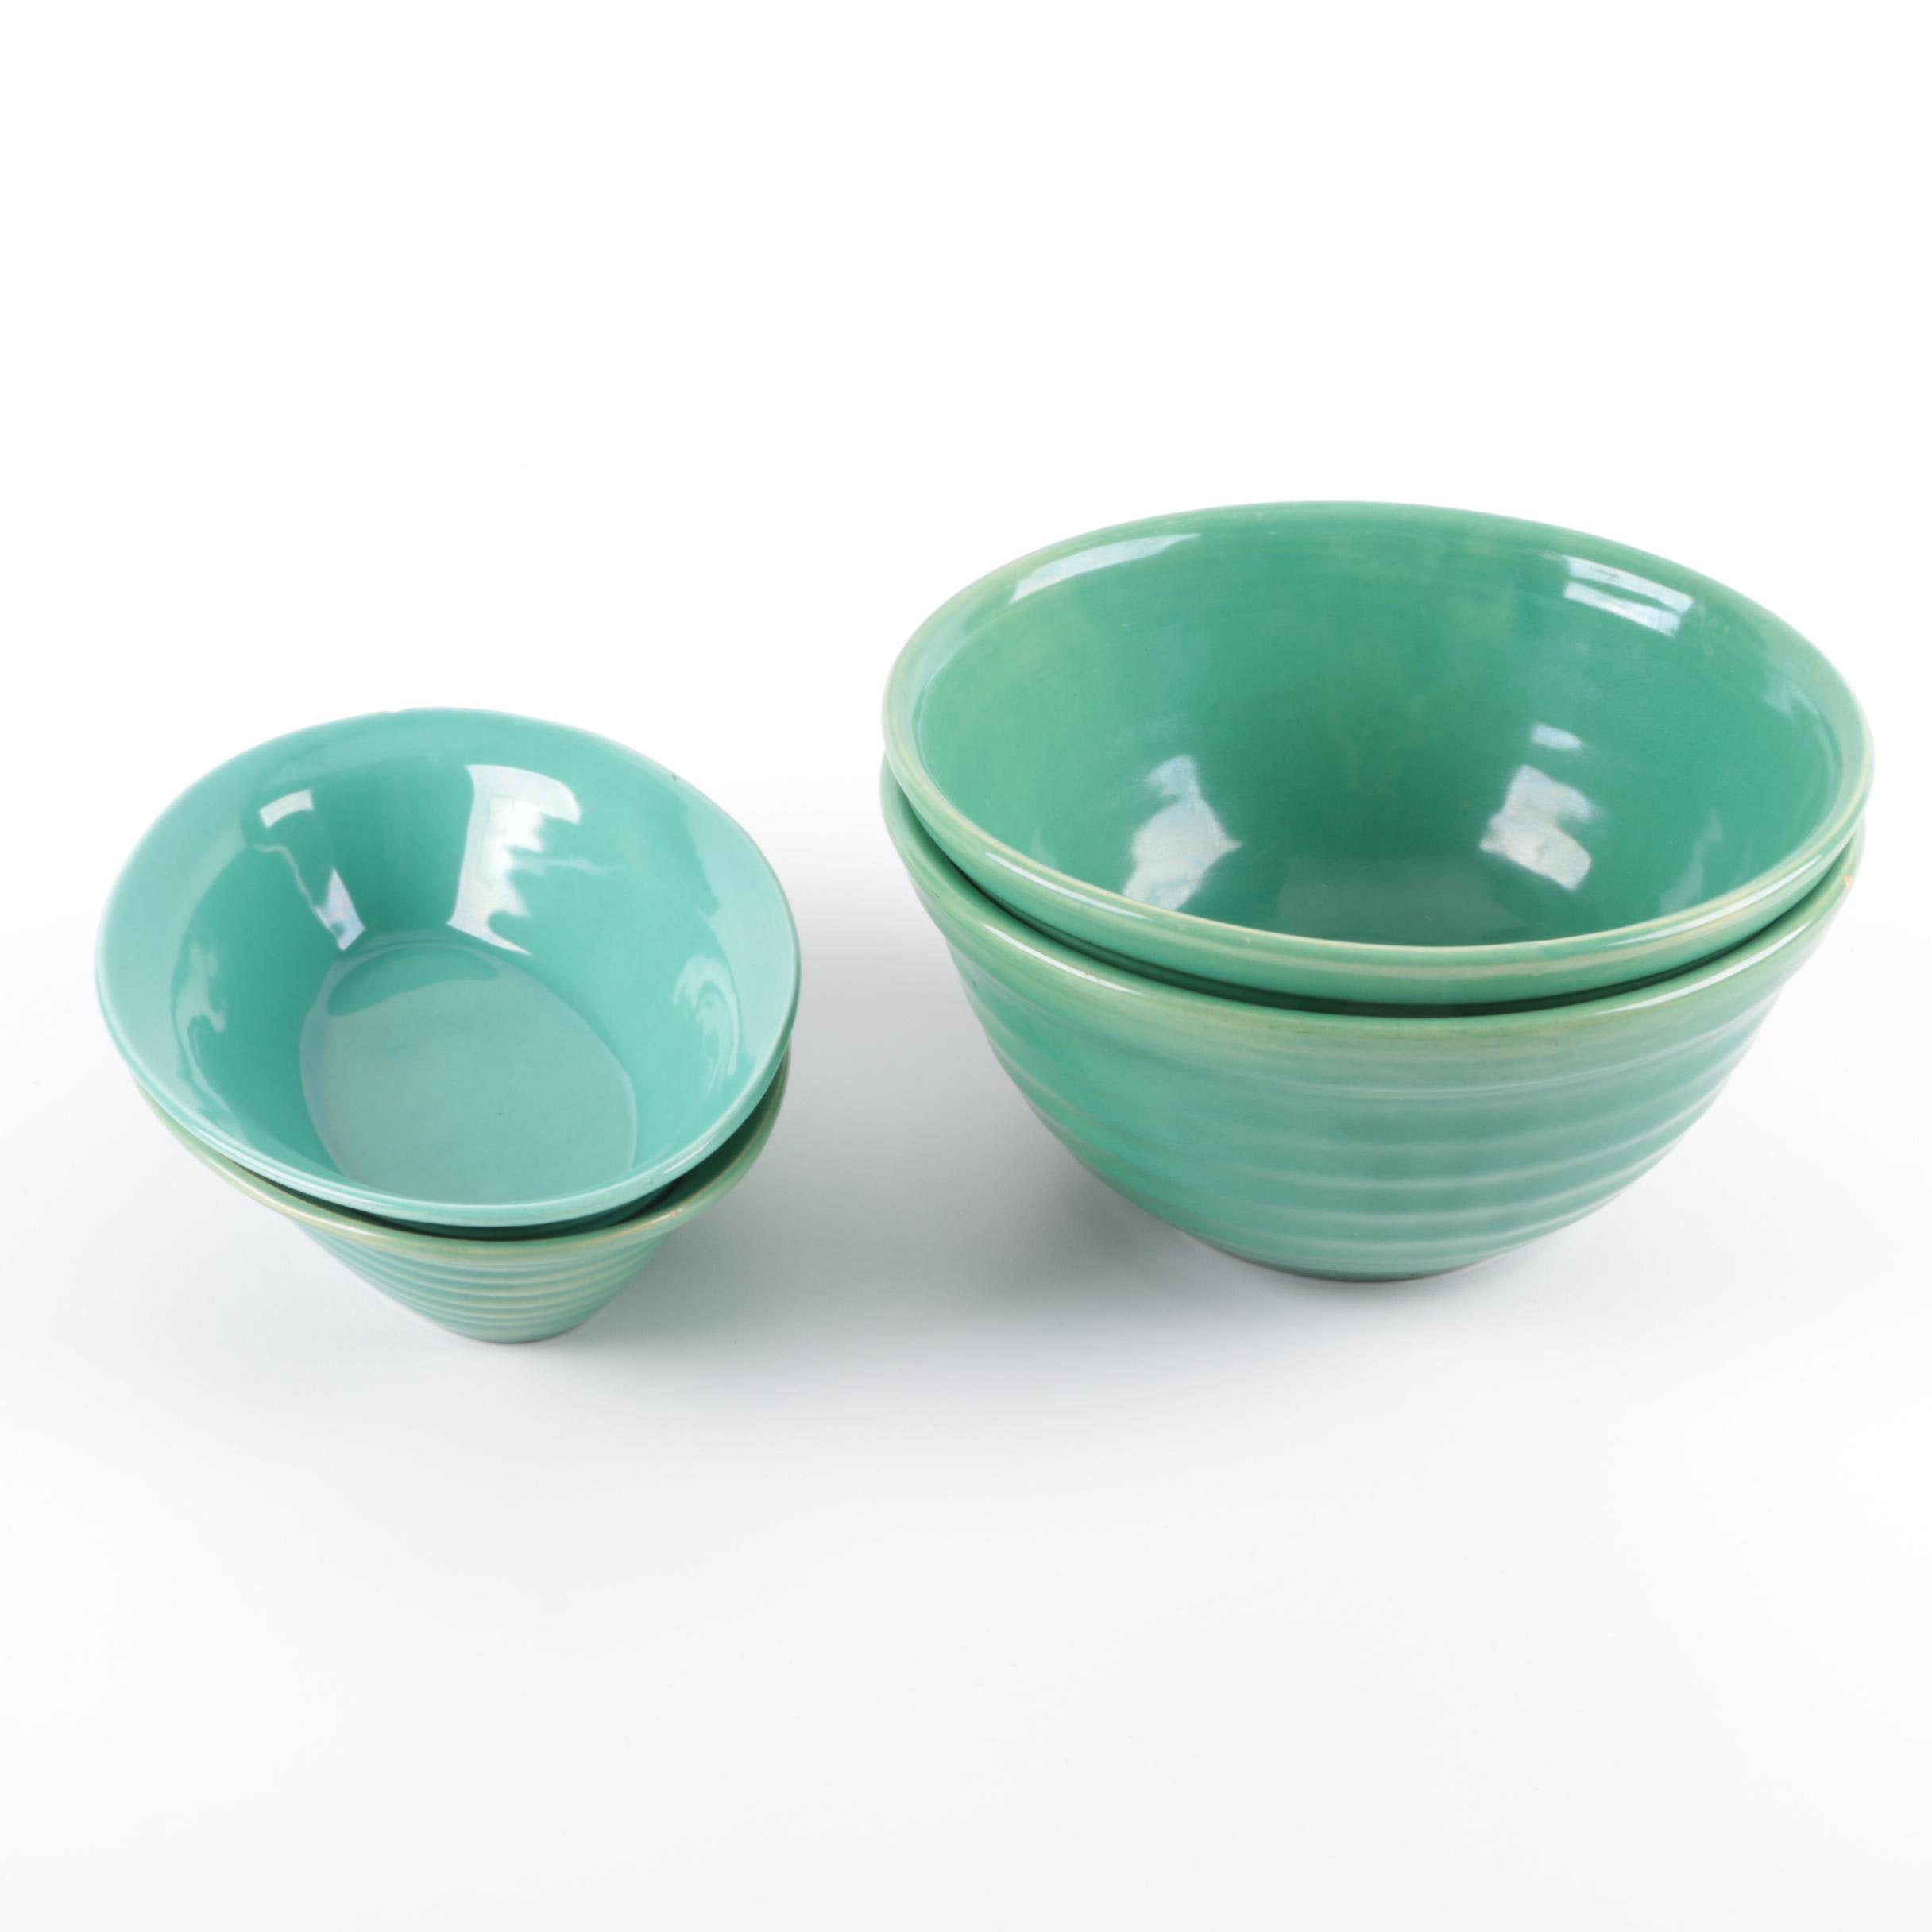 Vintage Bauer Pottery Turquoise Serving Dishes and Mixing Bowls